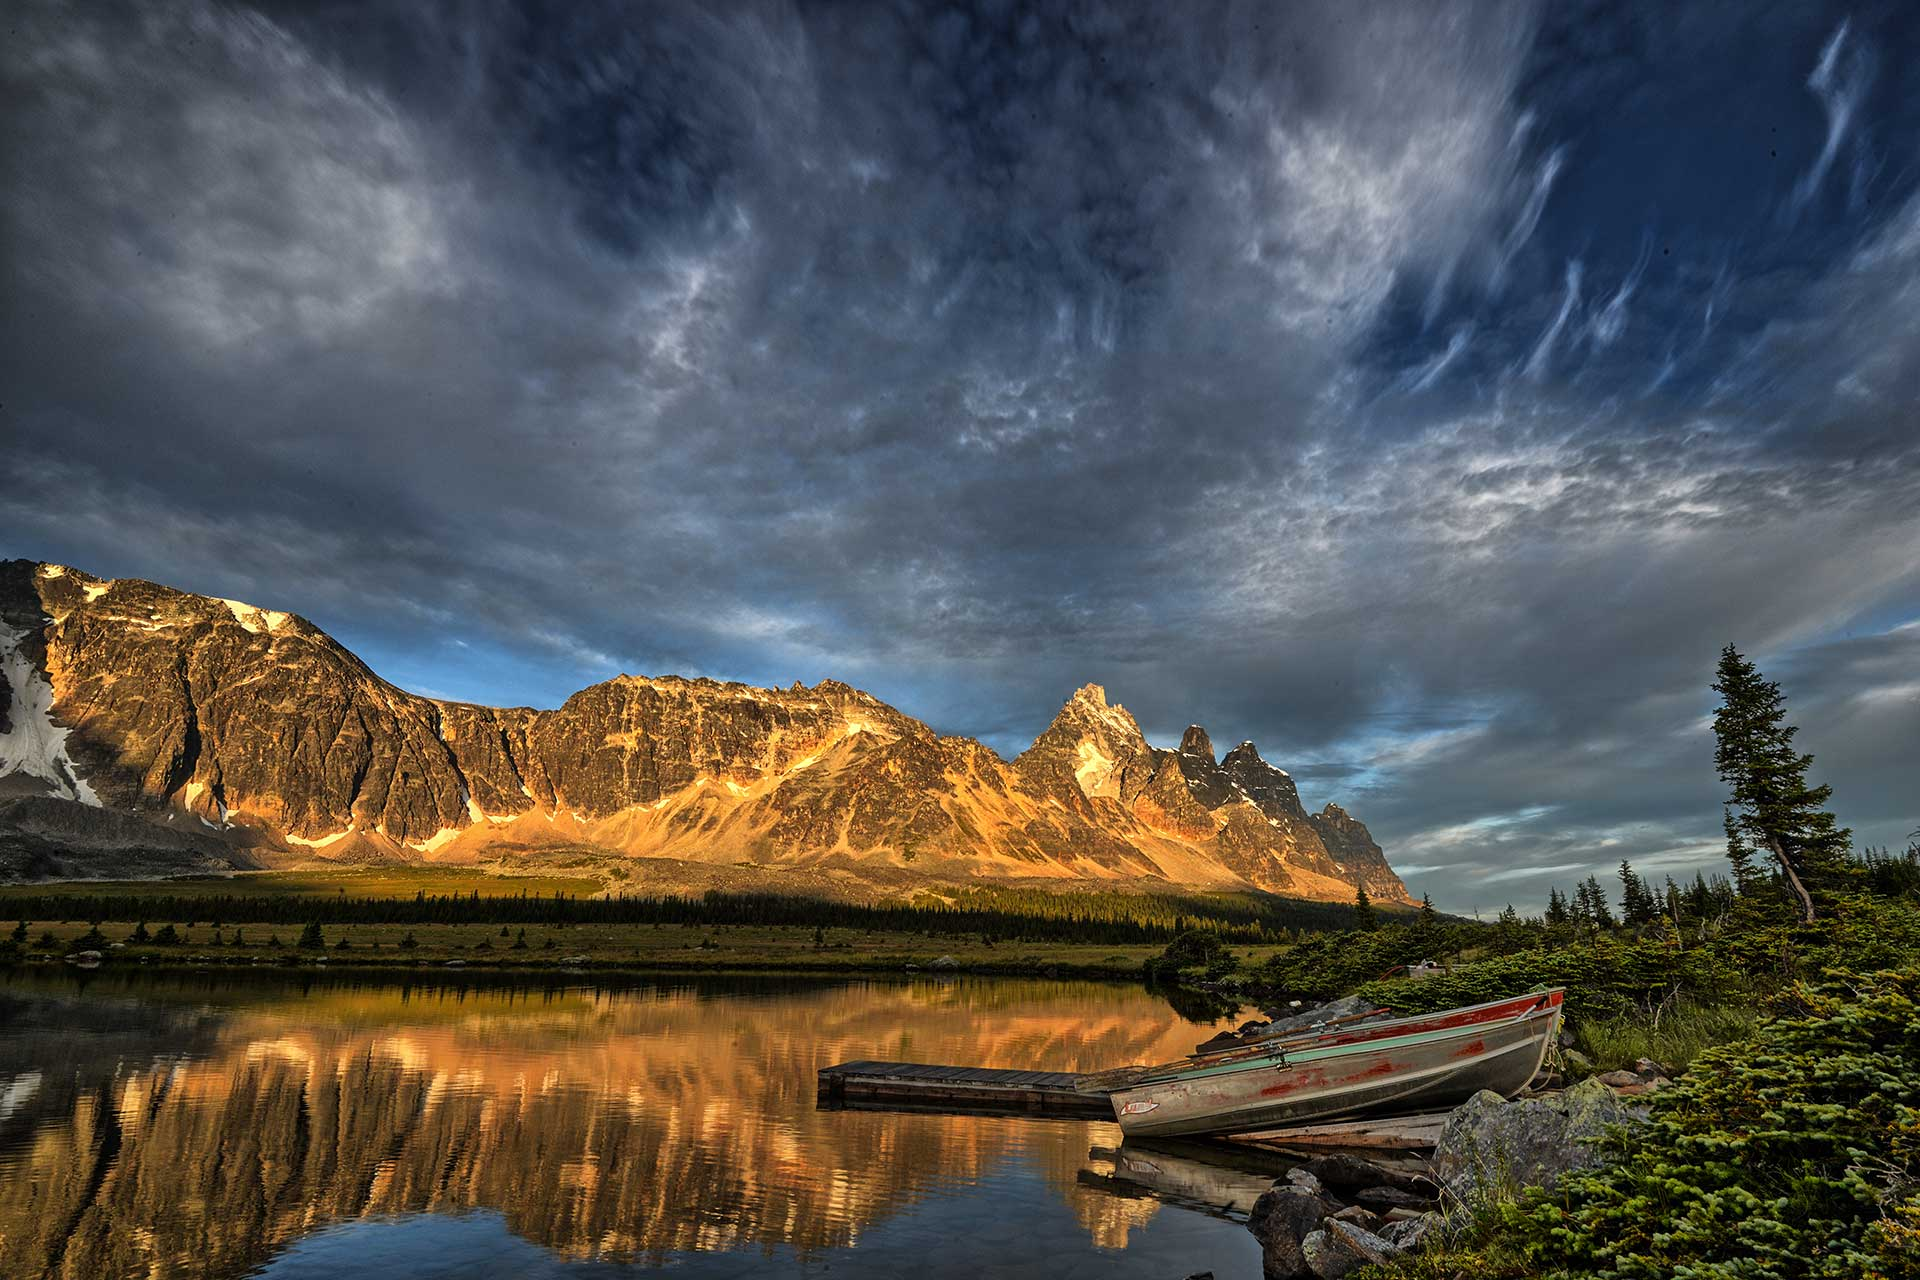 Tonquin Valley - Photo By Clement Wan